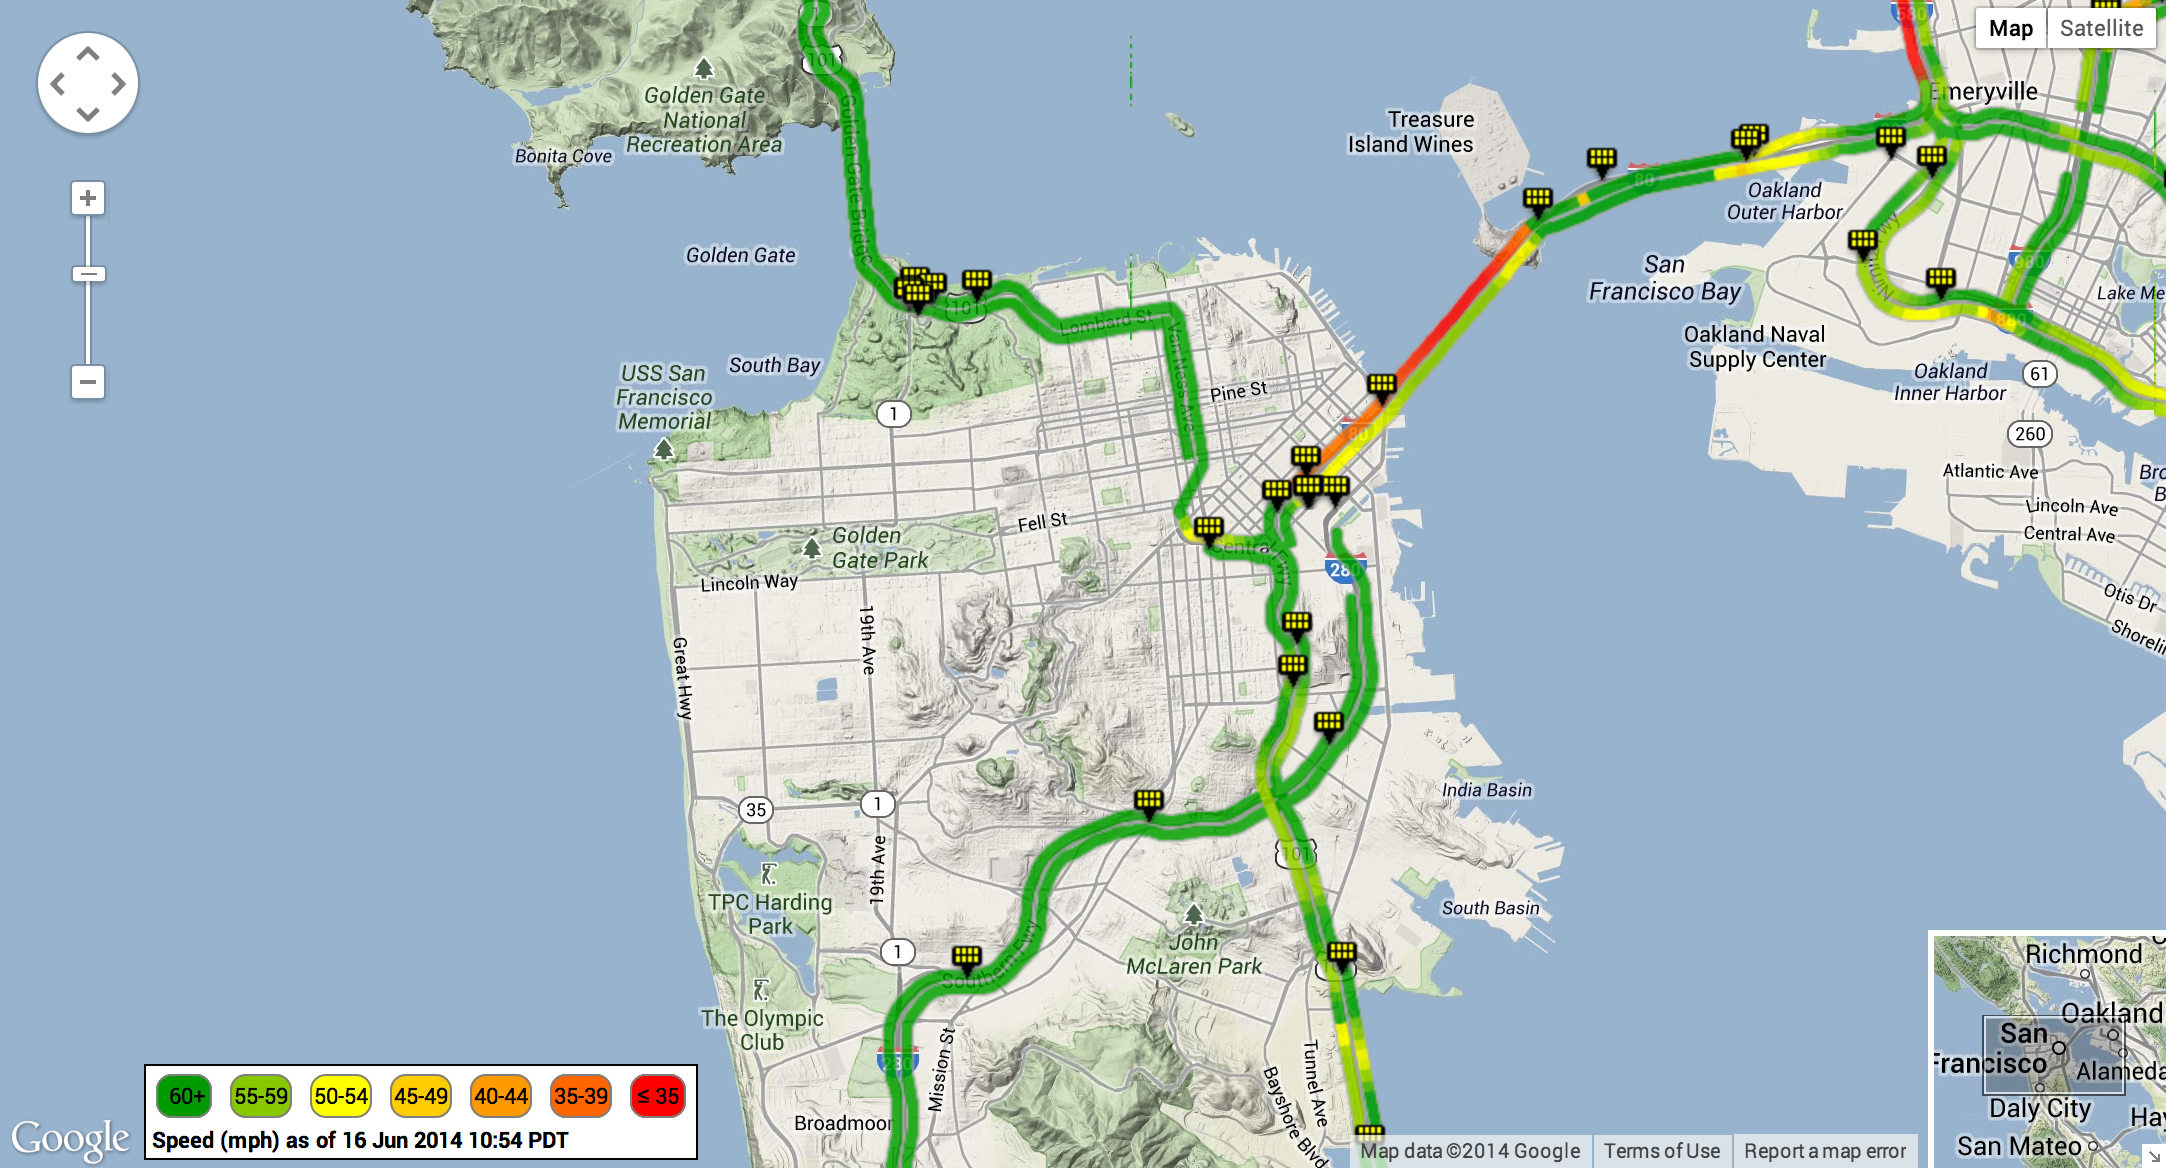 Caltrans Performance Measurement System Traffic Data Displayed On - Caltrans traffic map